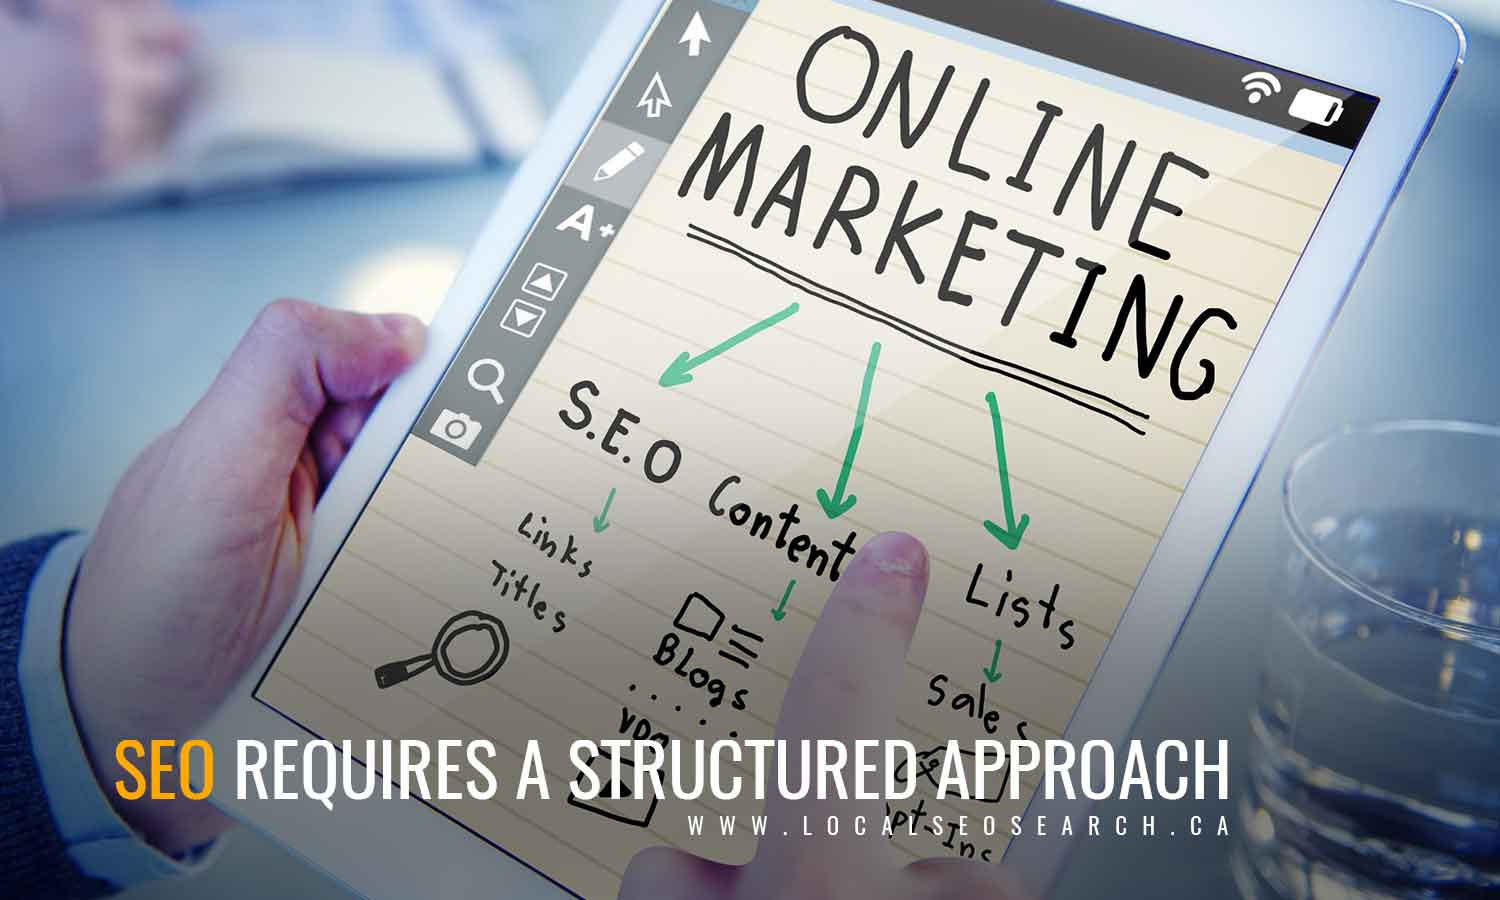 SEO requires a structured approach